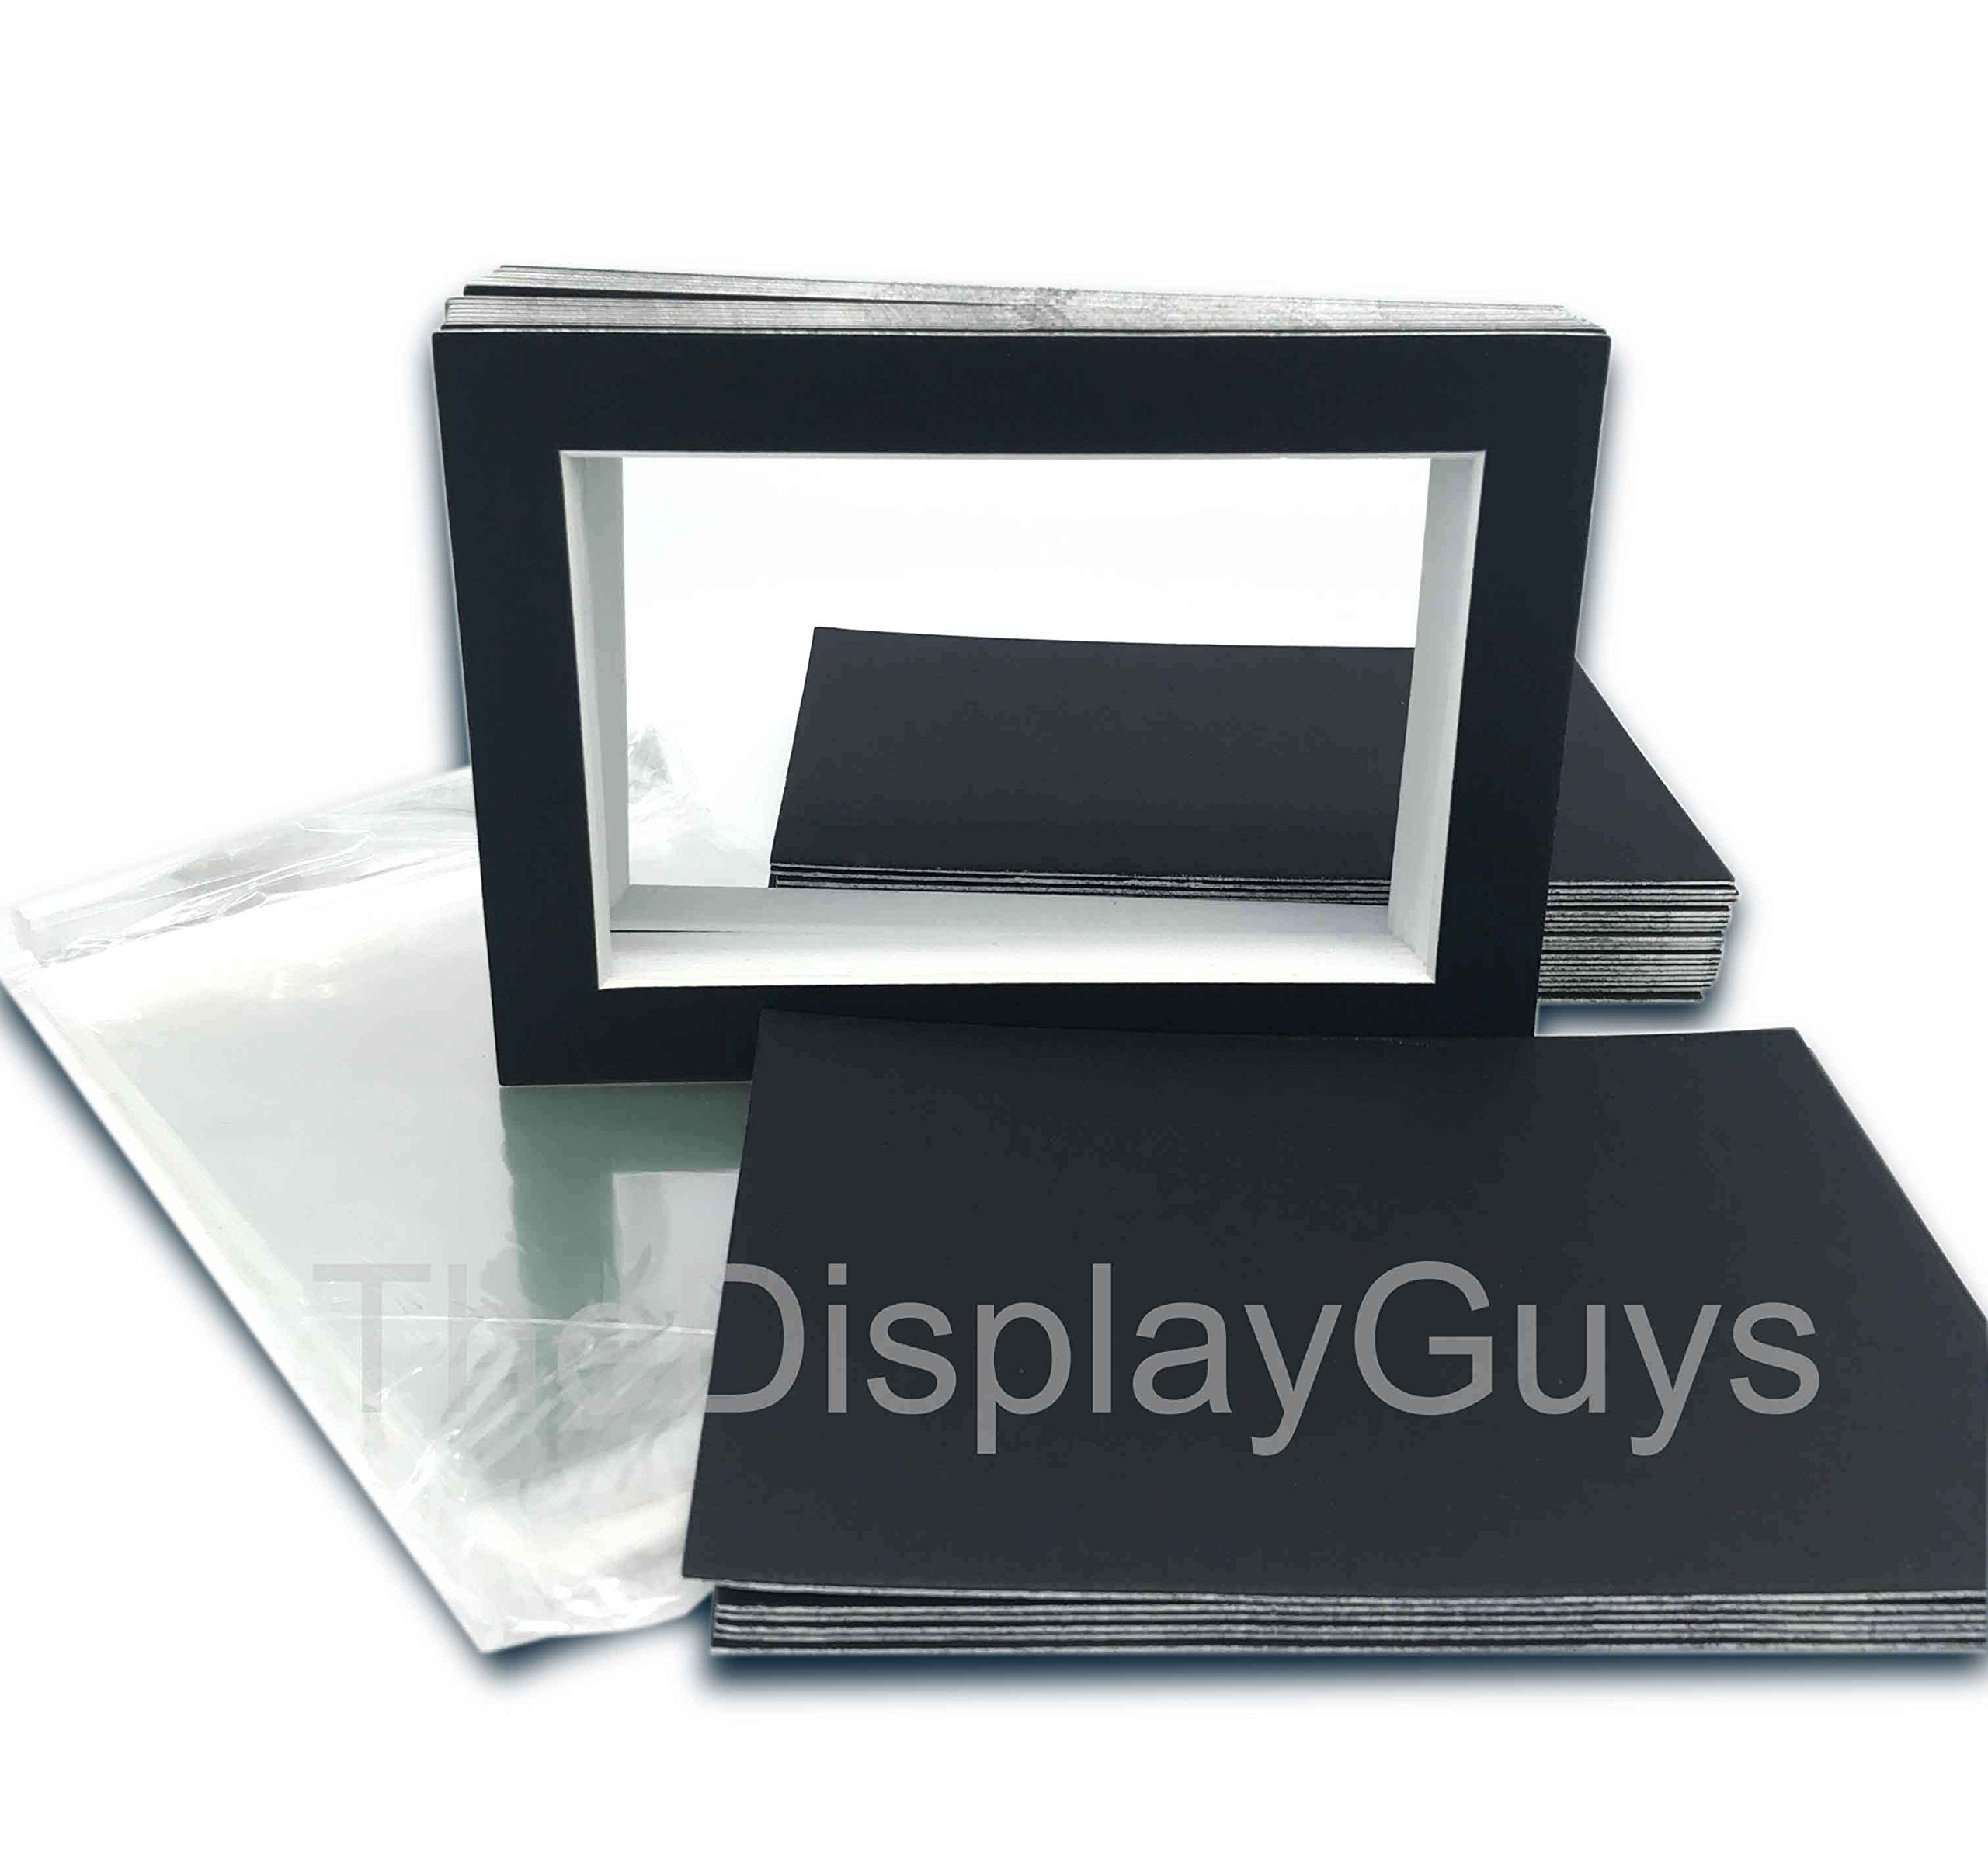 The Display Guys, 25 sets 11x14 inches Black Picture Photo Matting Mats Boards (White Core Bevel Cut) + Black Back Boards + Clear Plastic Bags (25 pcs black complete set) by The Display Guys